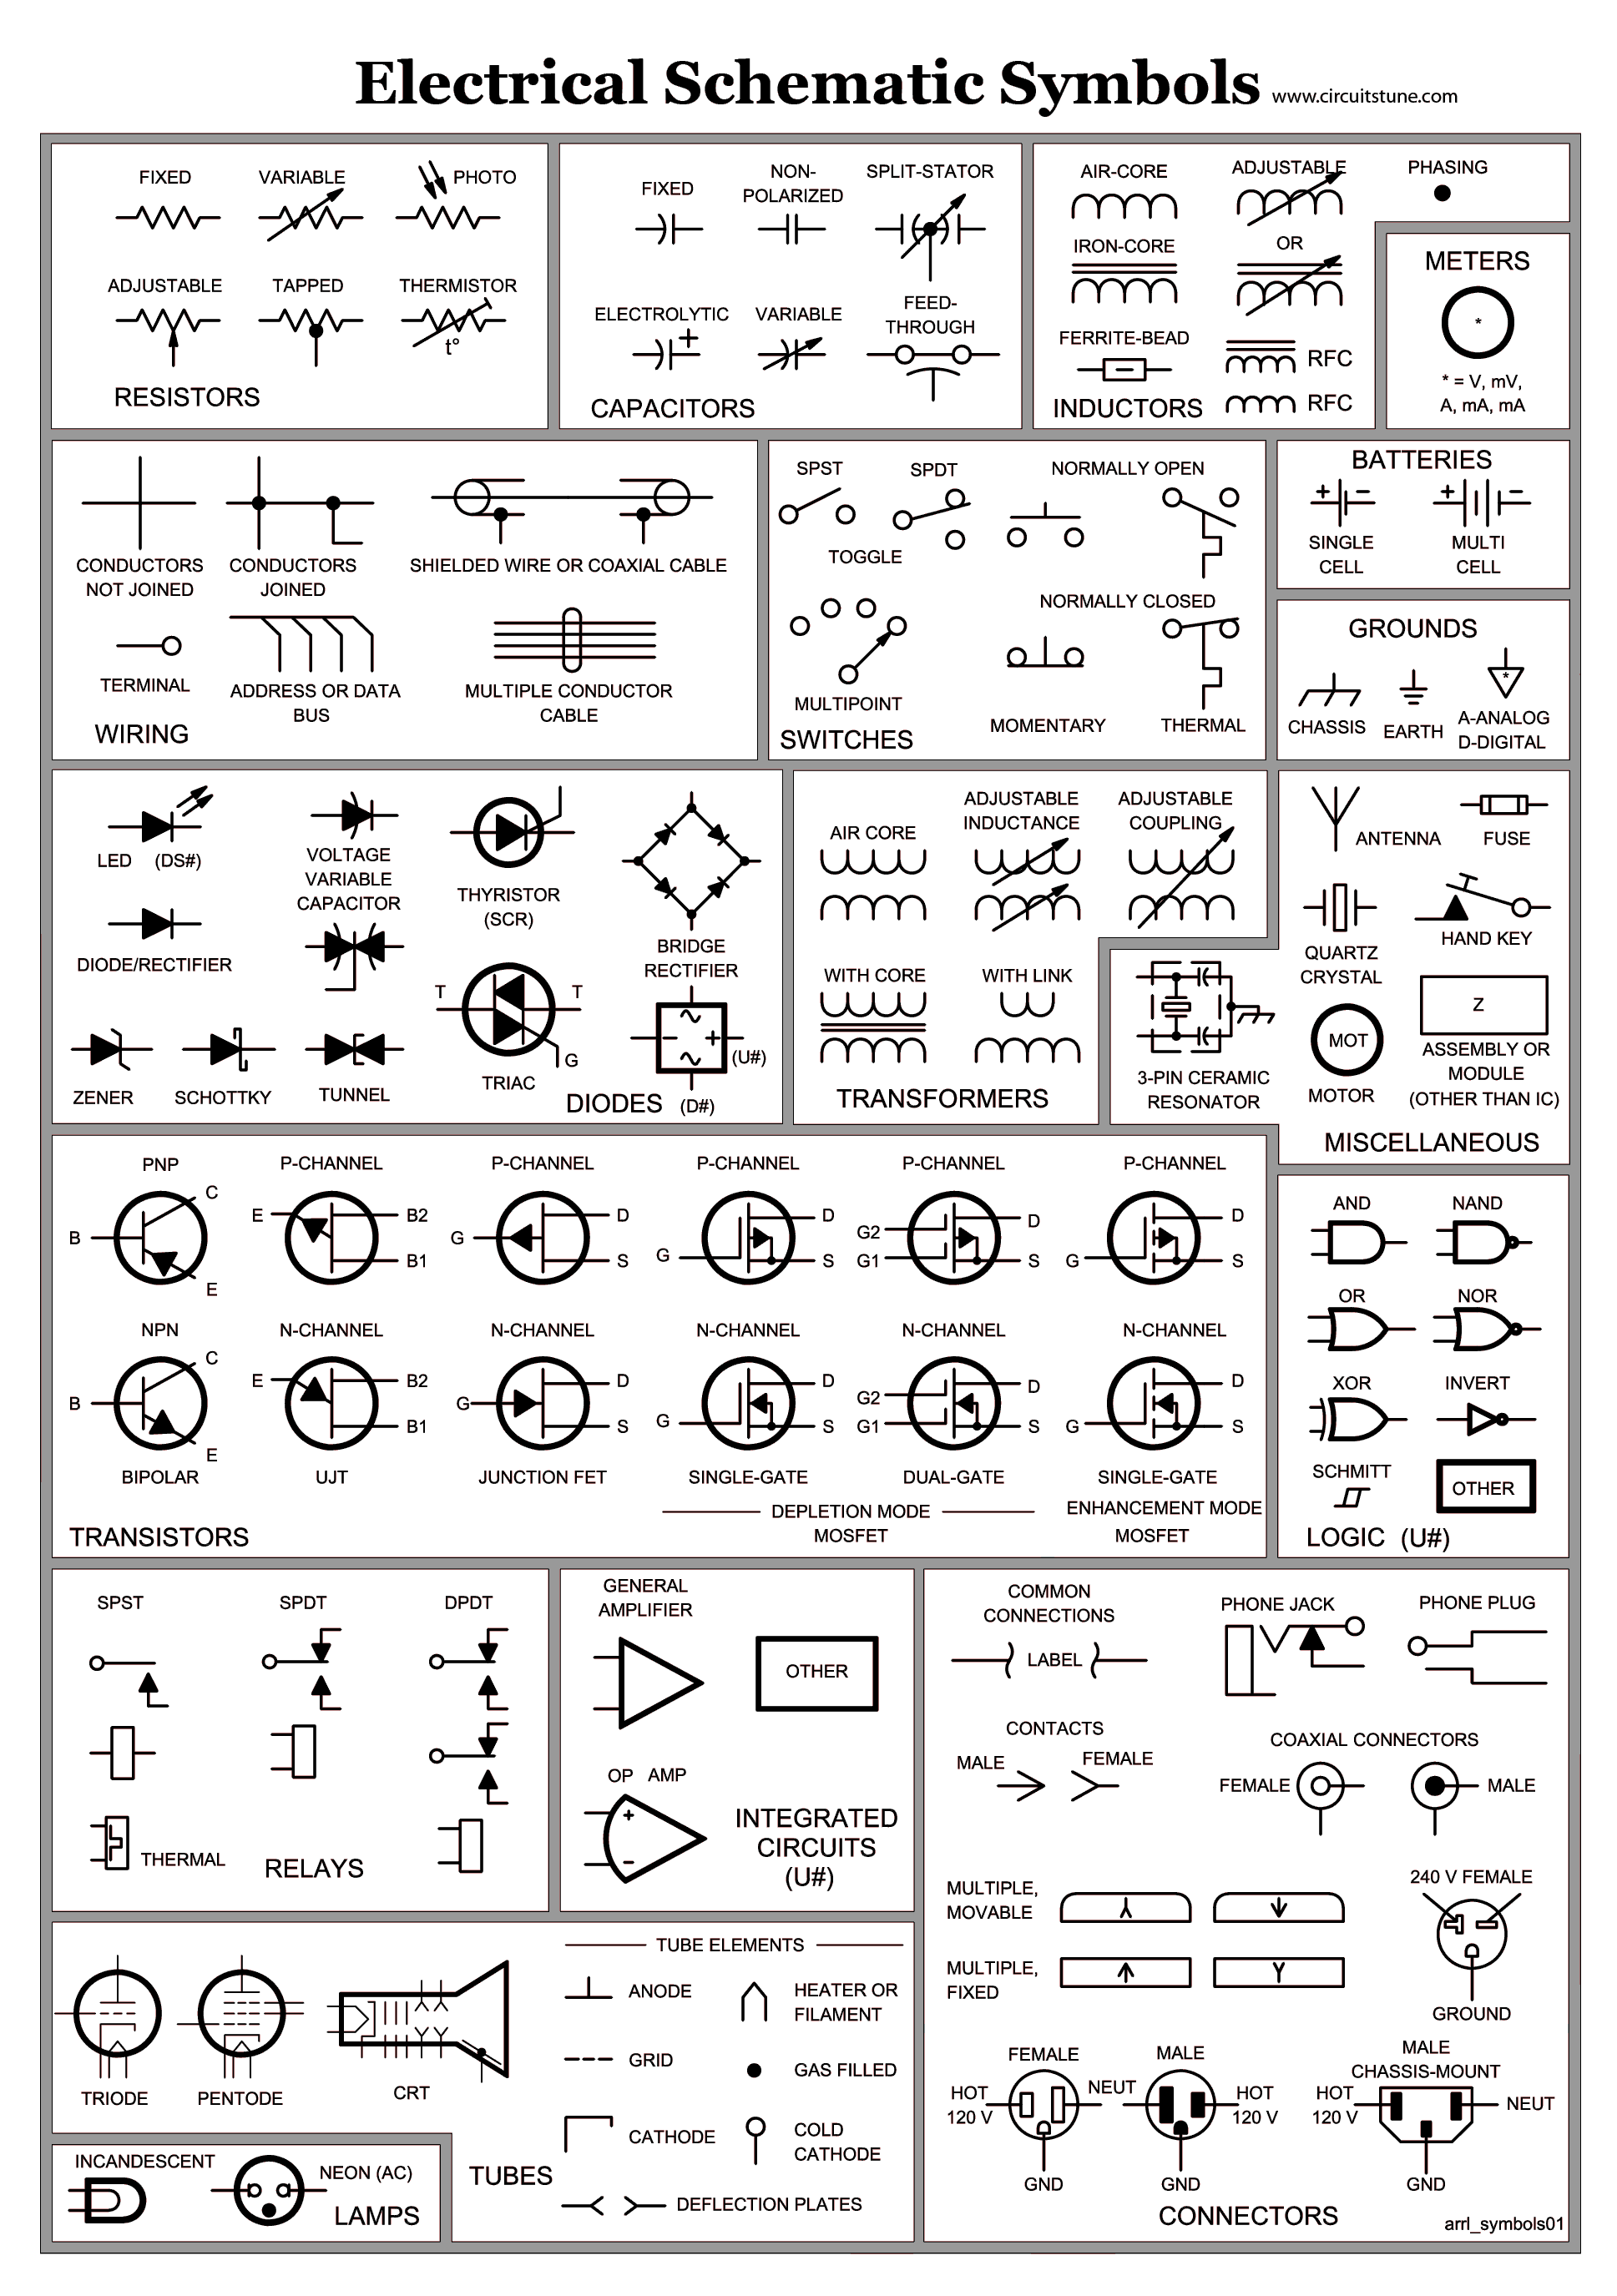 basic wiring diagram symbols   basic electrical circuit symbols    electrical schematic symbols circuitstune